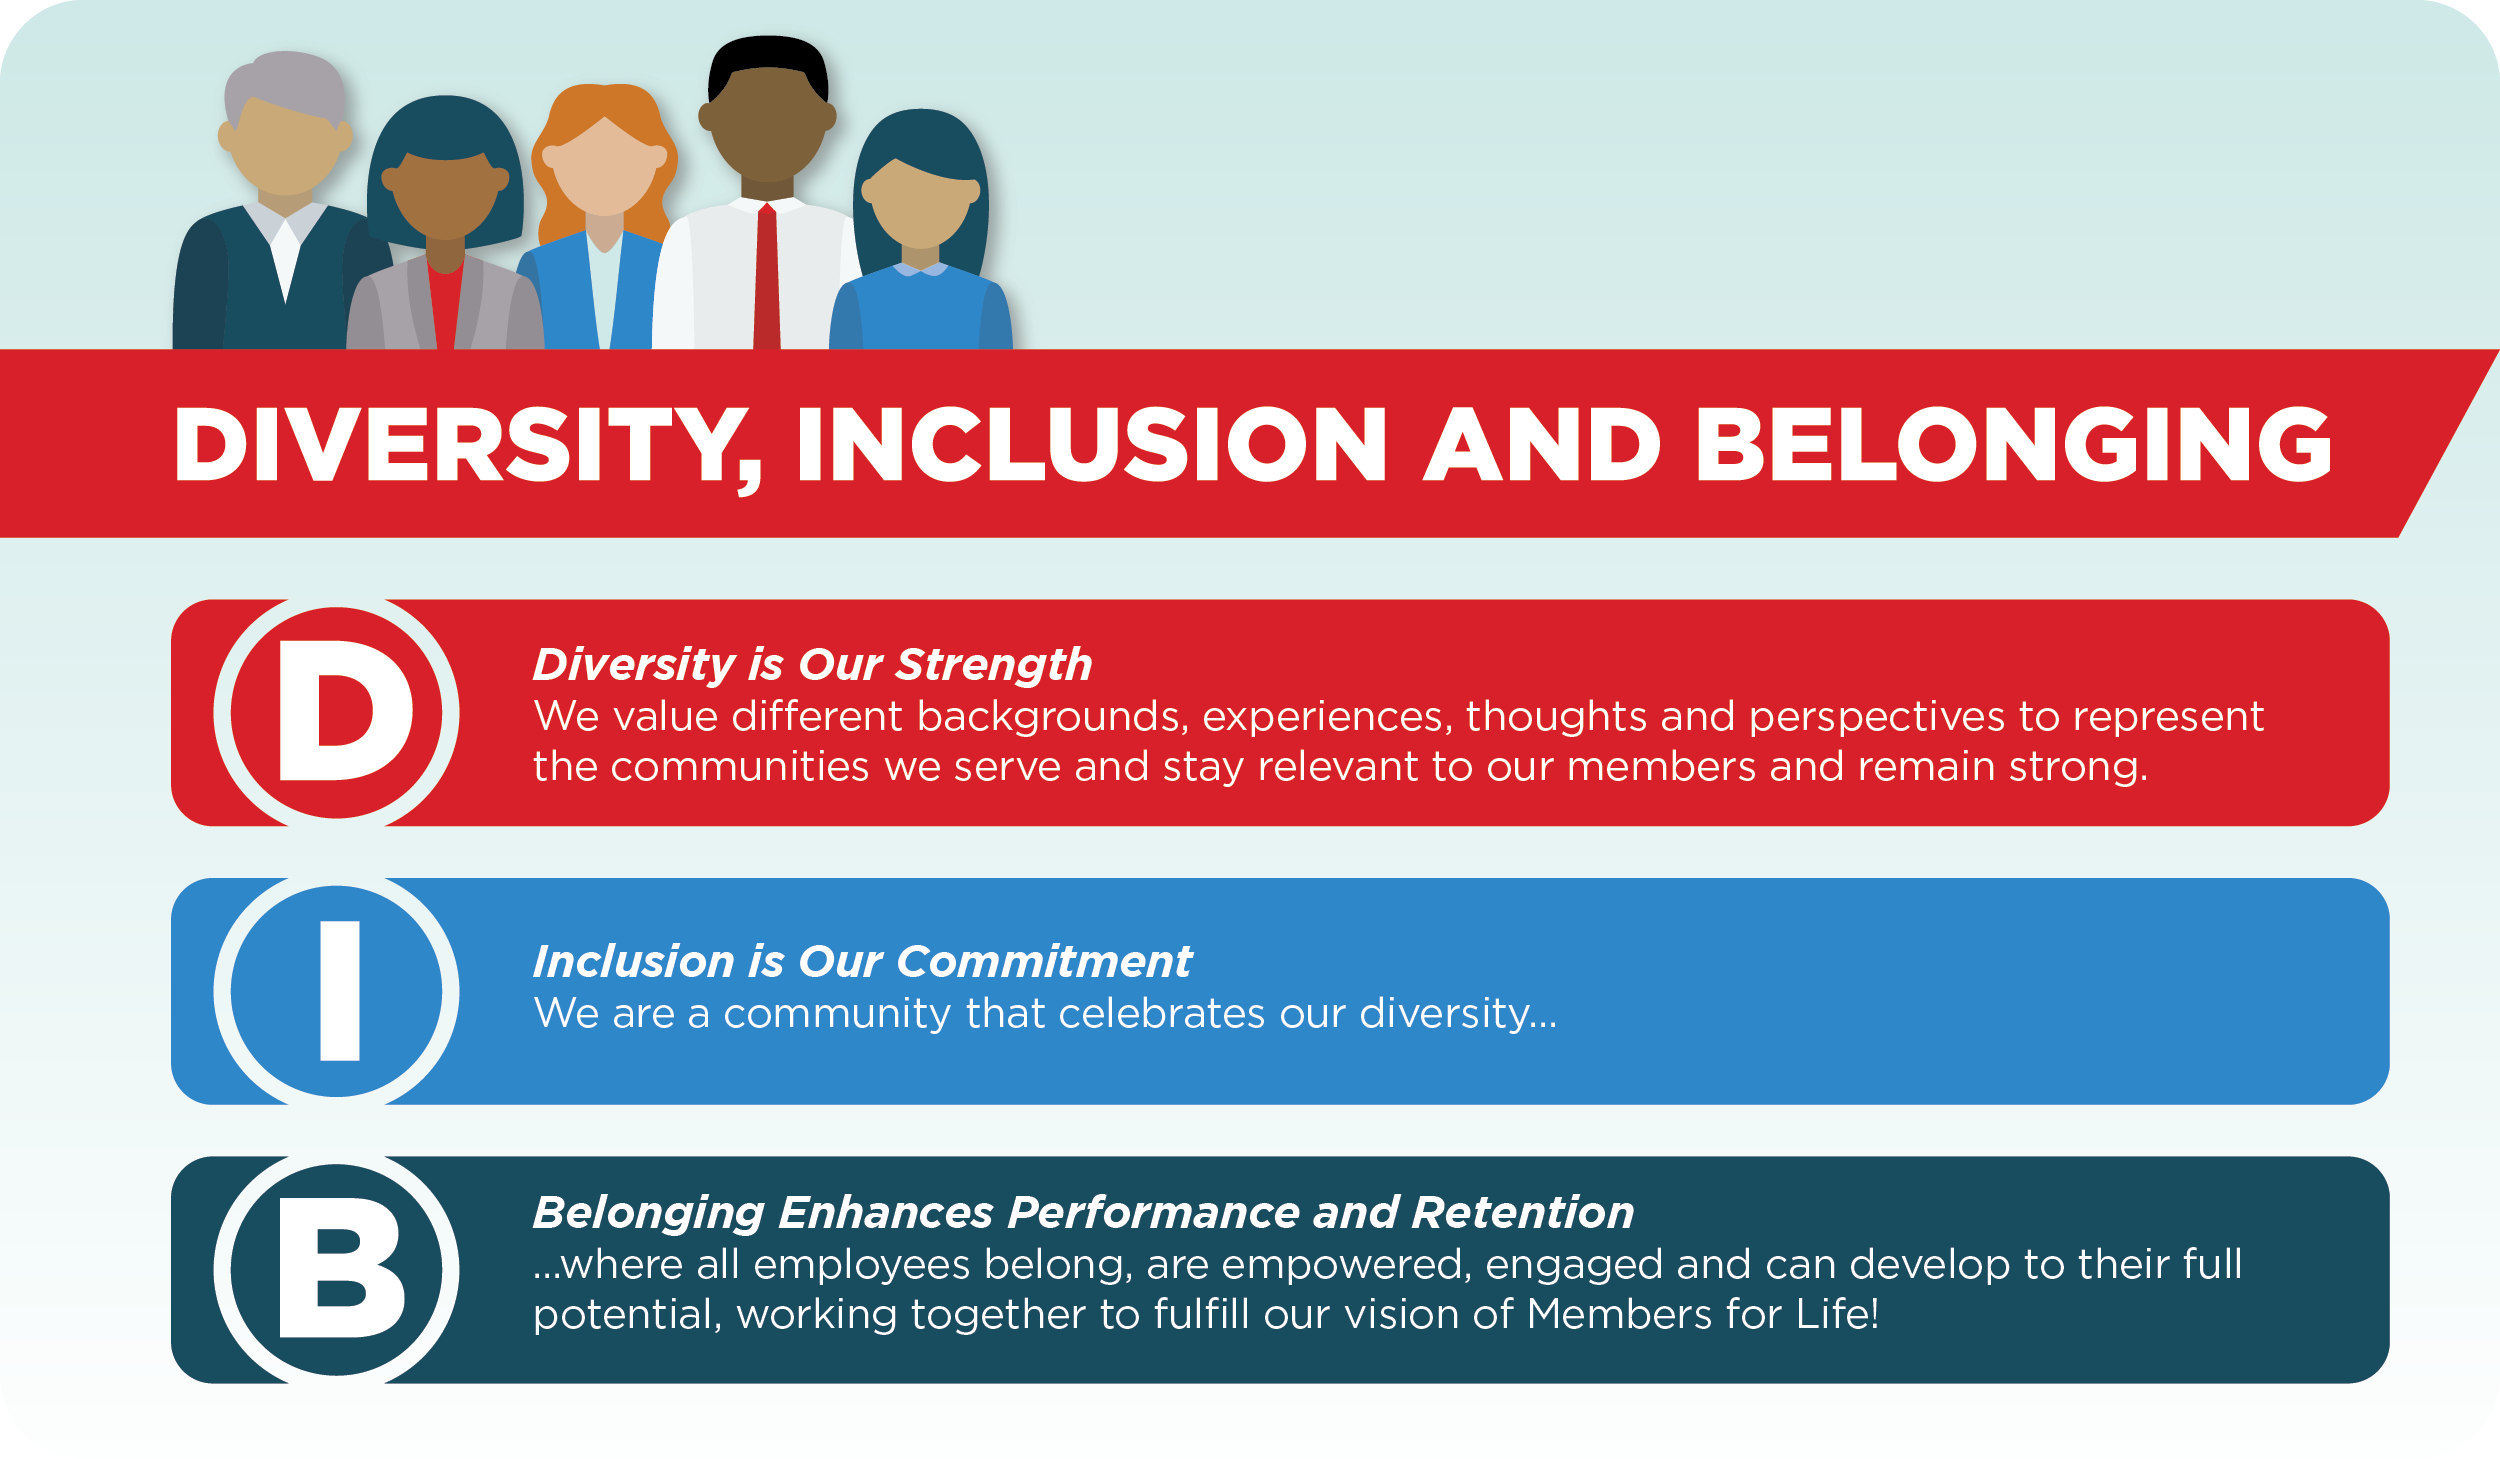 Diversity, Inclusion and Belonging